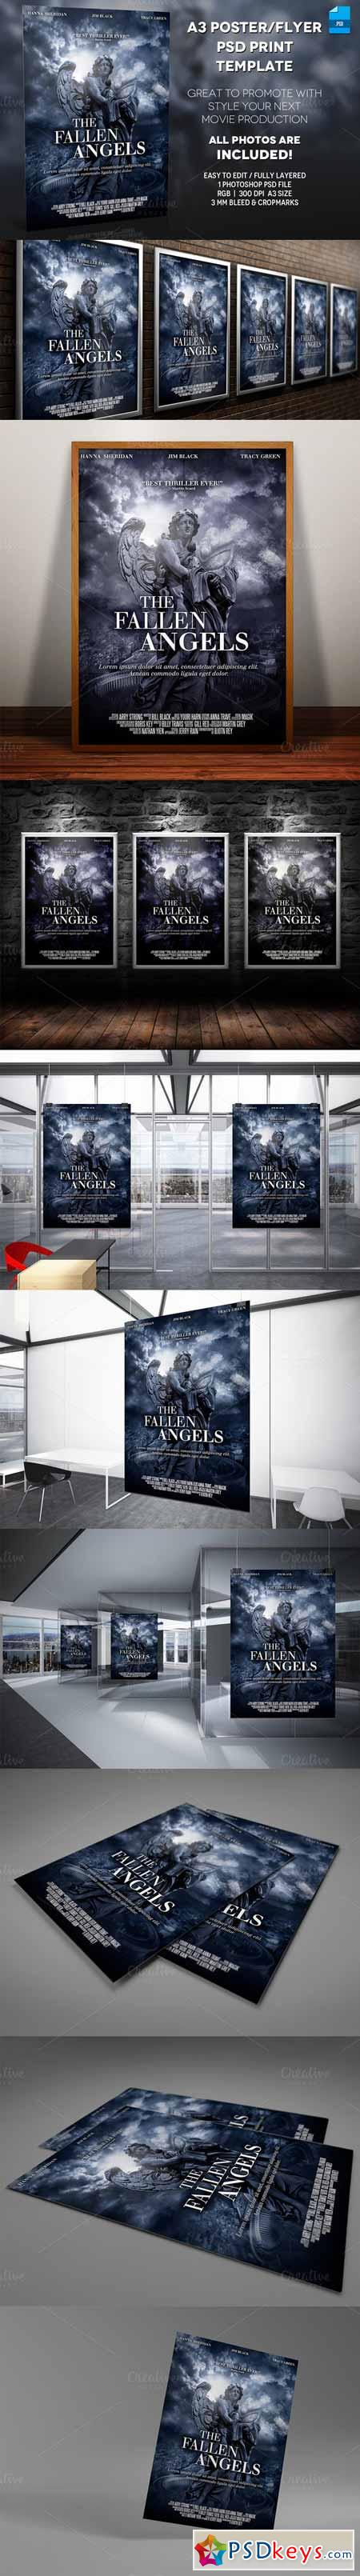 A3 - Movie Poster Print Template 2 381841